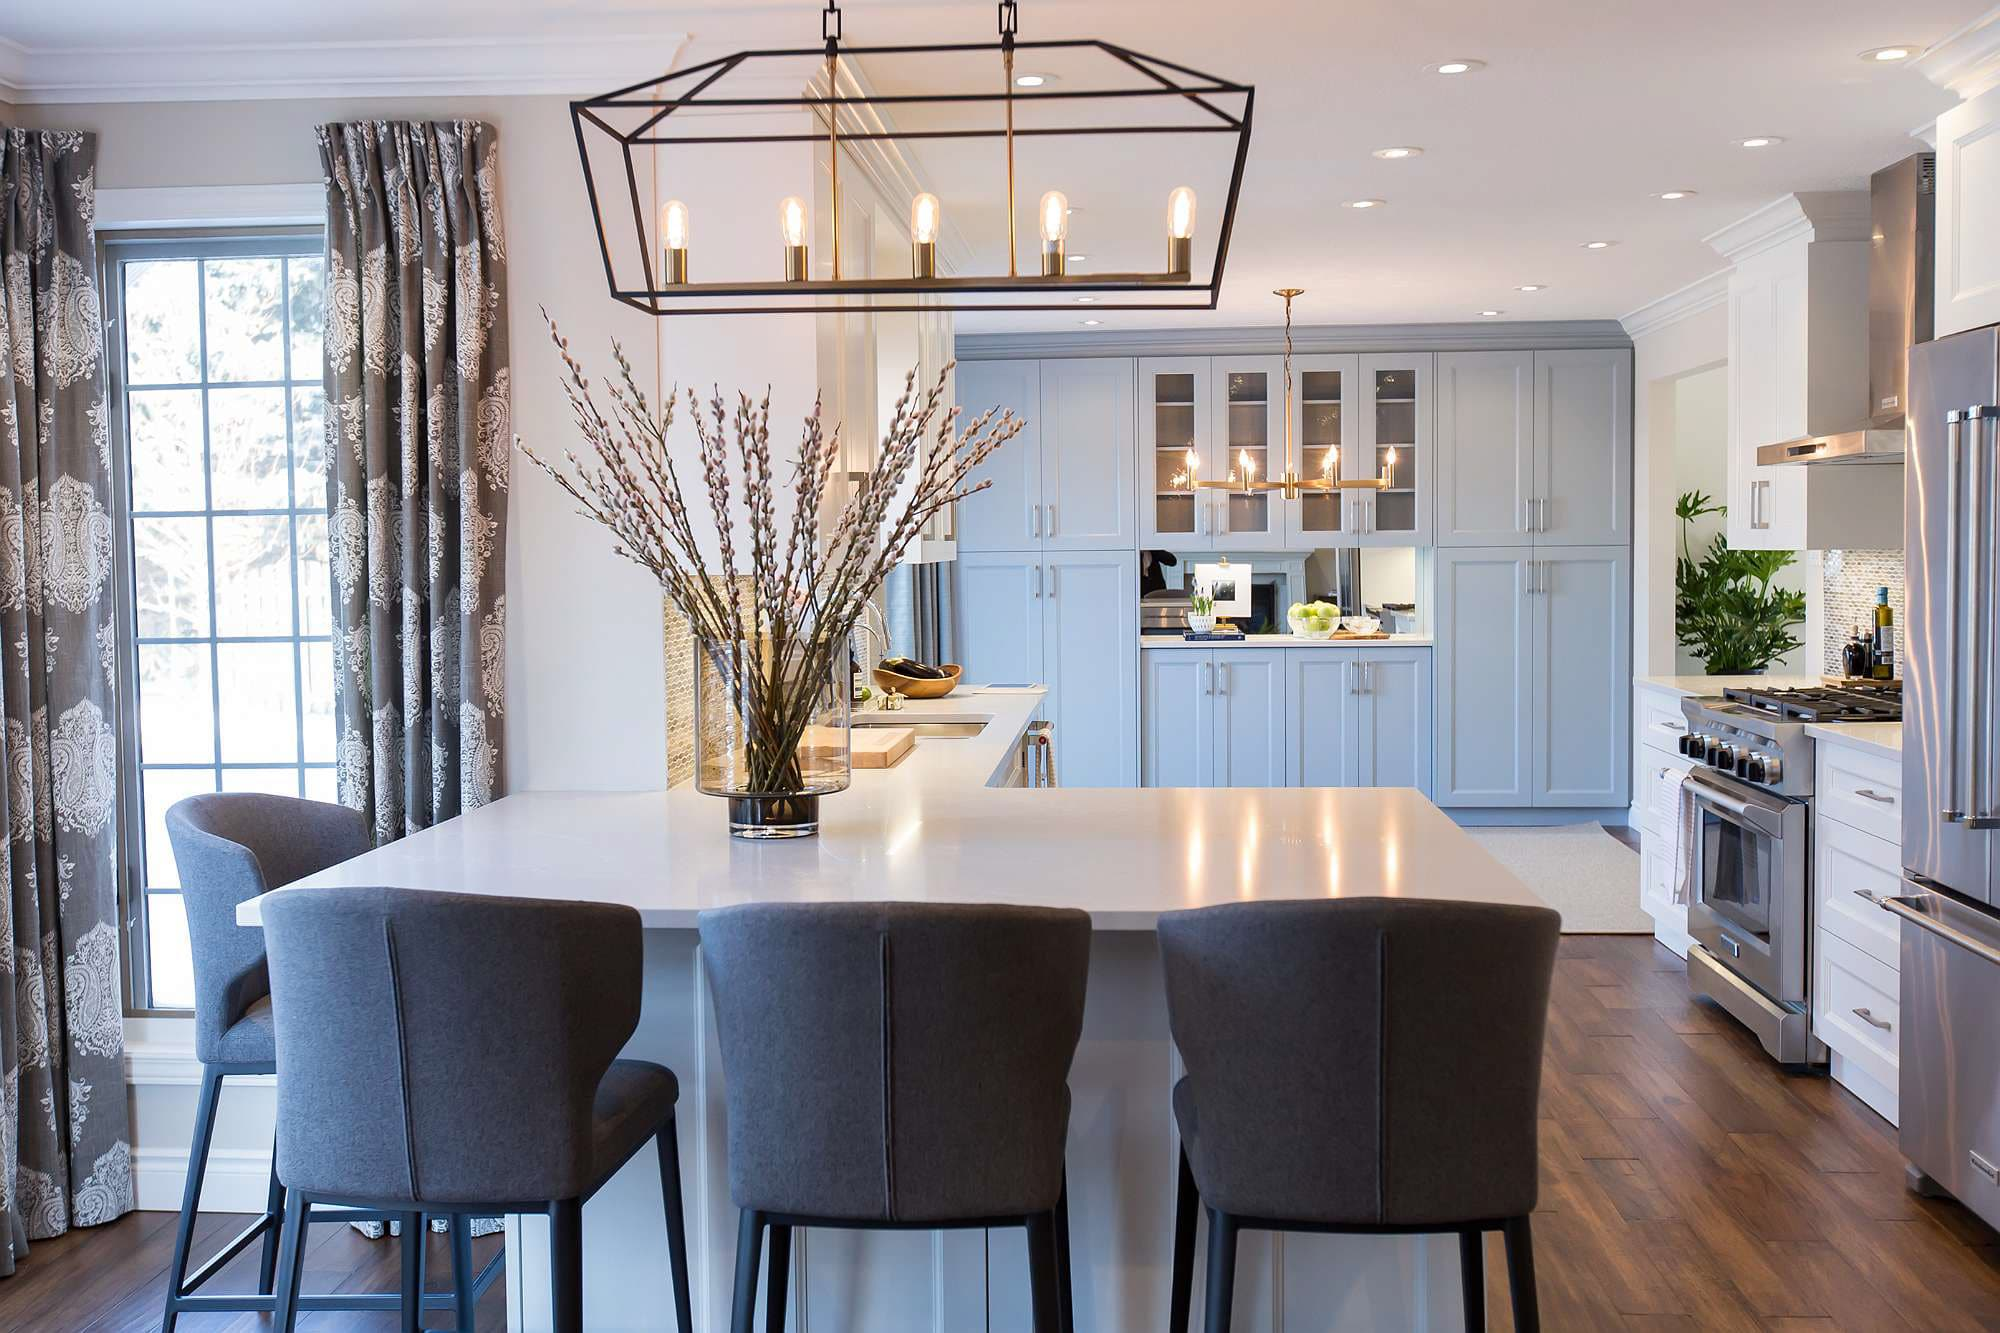 Kitchen Island with white cabinets and grey quartz countertop with grey wool upholstered stool, Hanging wrought iron light and antique hardwood floor